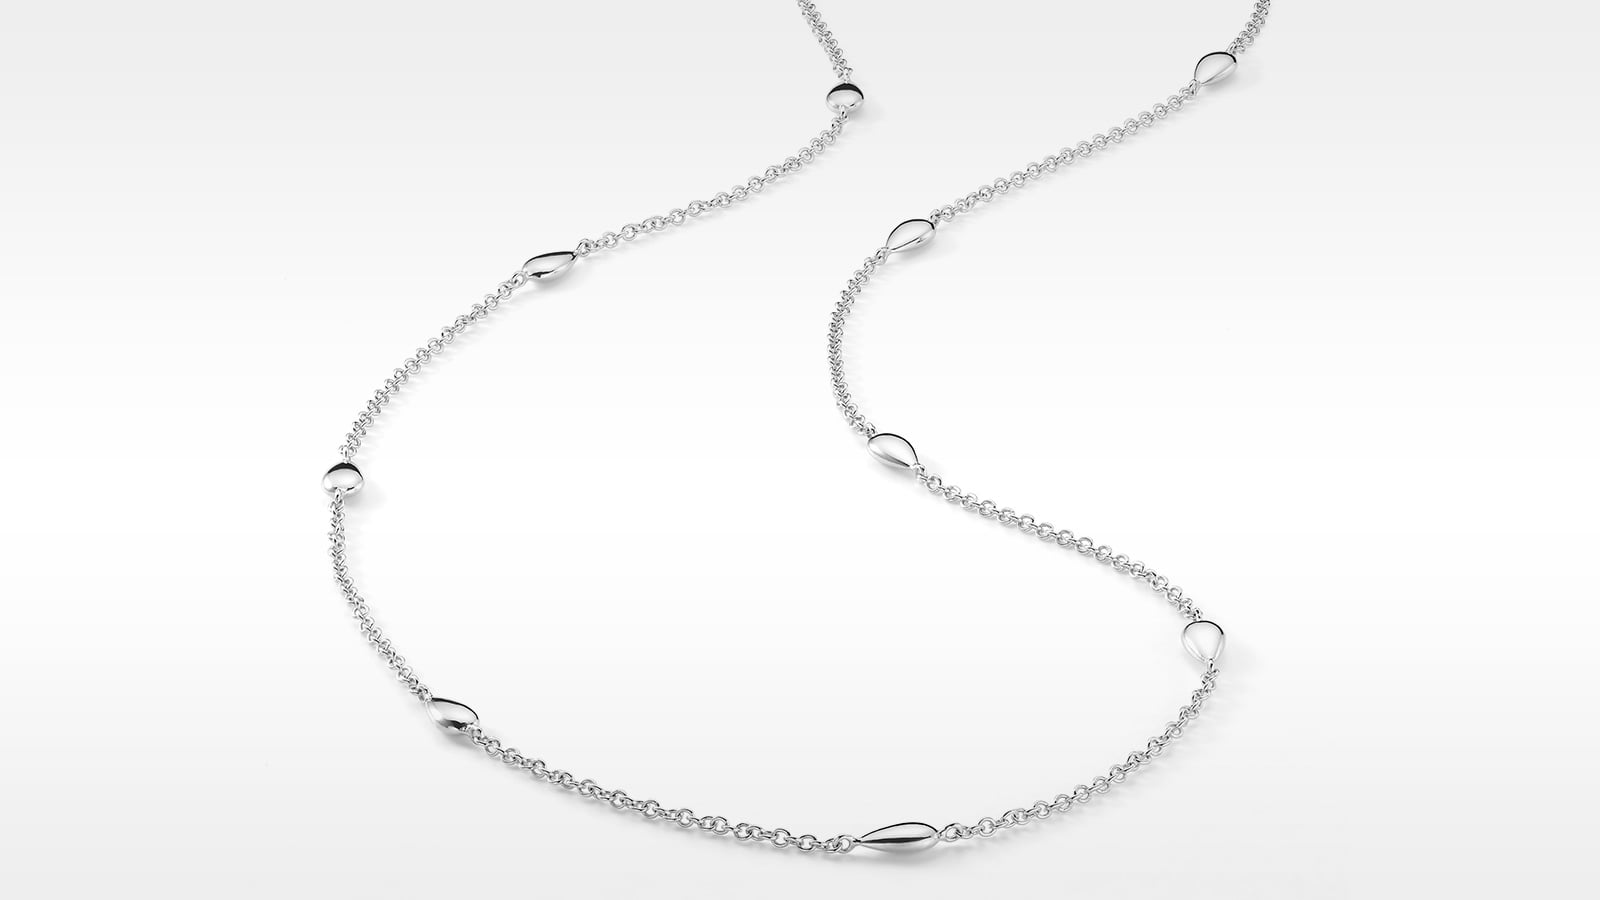 Fine Jewellery: OMEGA Dewdrop Collection - Slide 2 - 3029